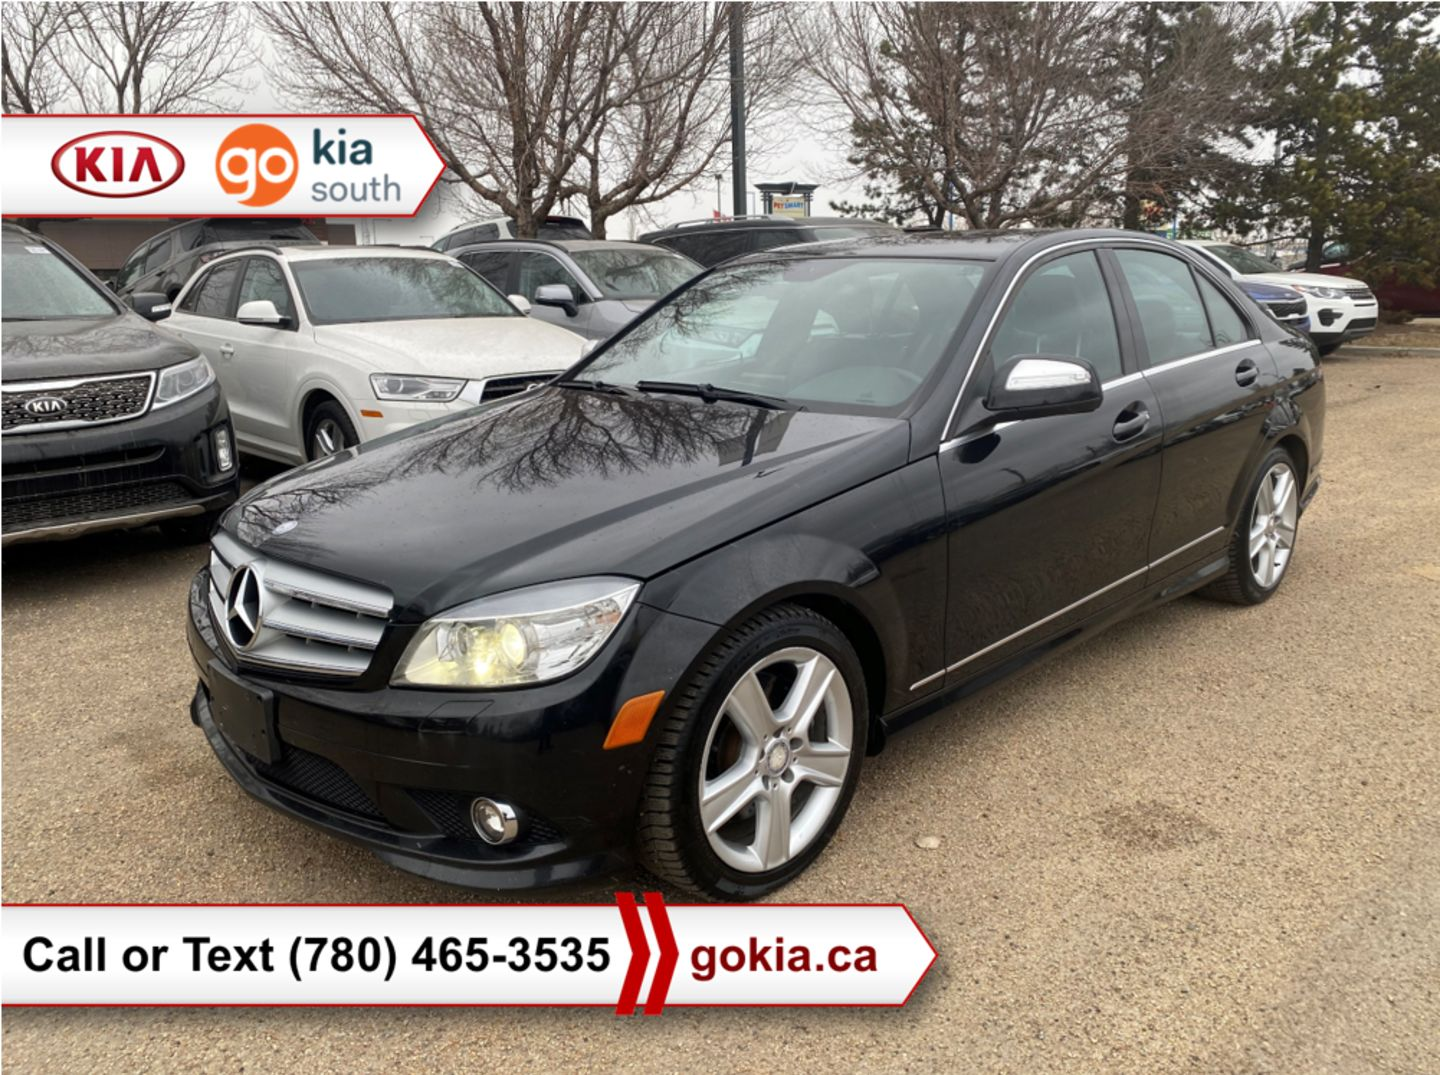 2009 Mercedes-Benz C-Class 3.0L for sale in Edmonton, Alberta